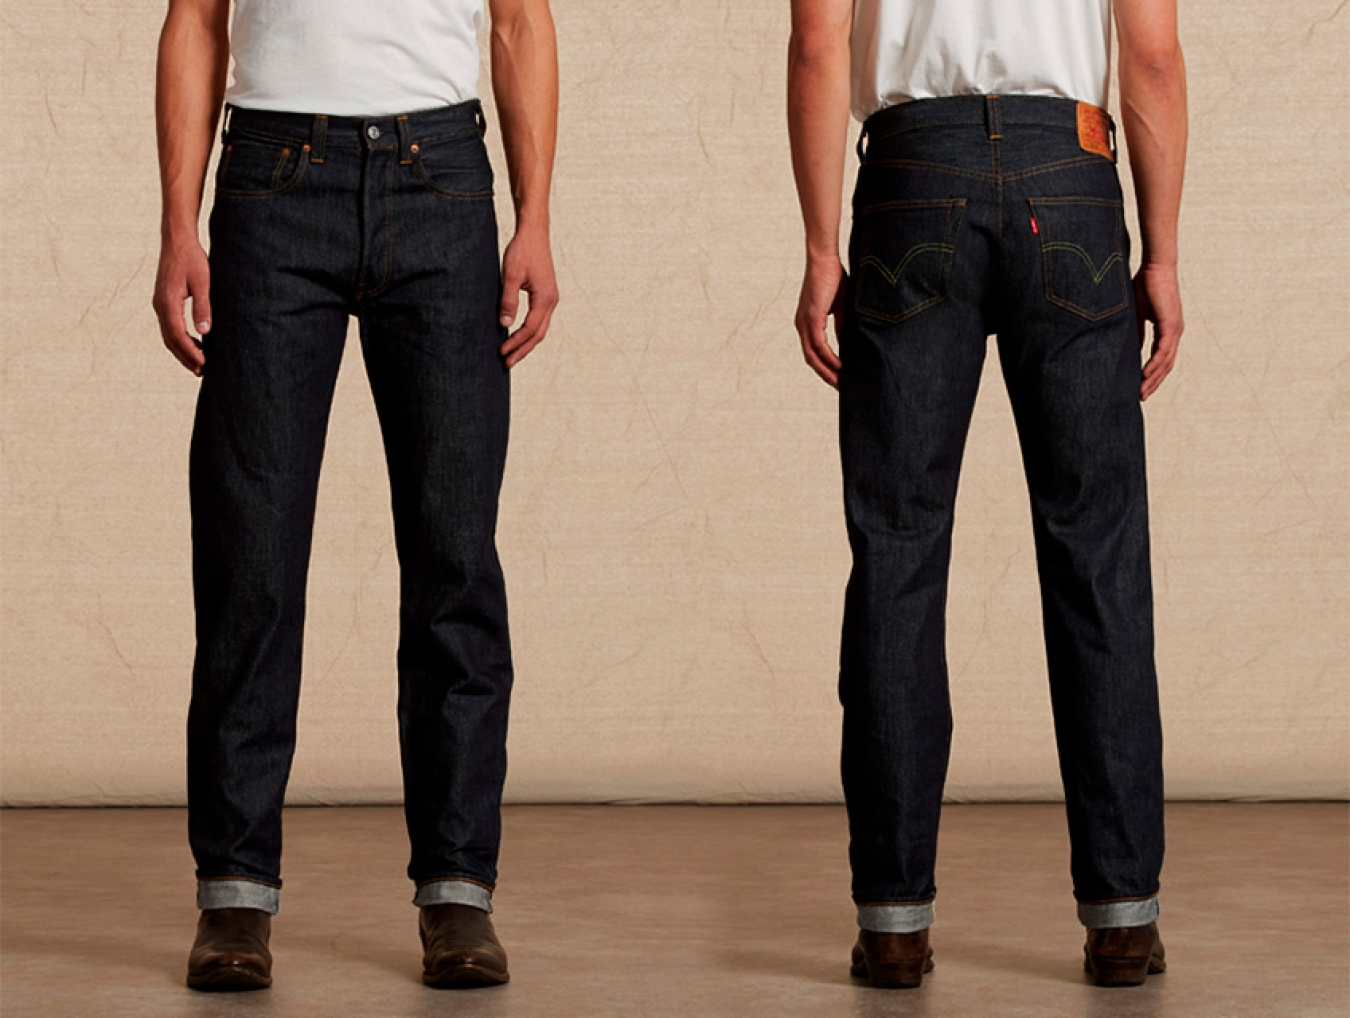 LEVI'S 501 1947 front and back Courtesy of Levi's Vintage Clothing